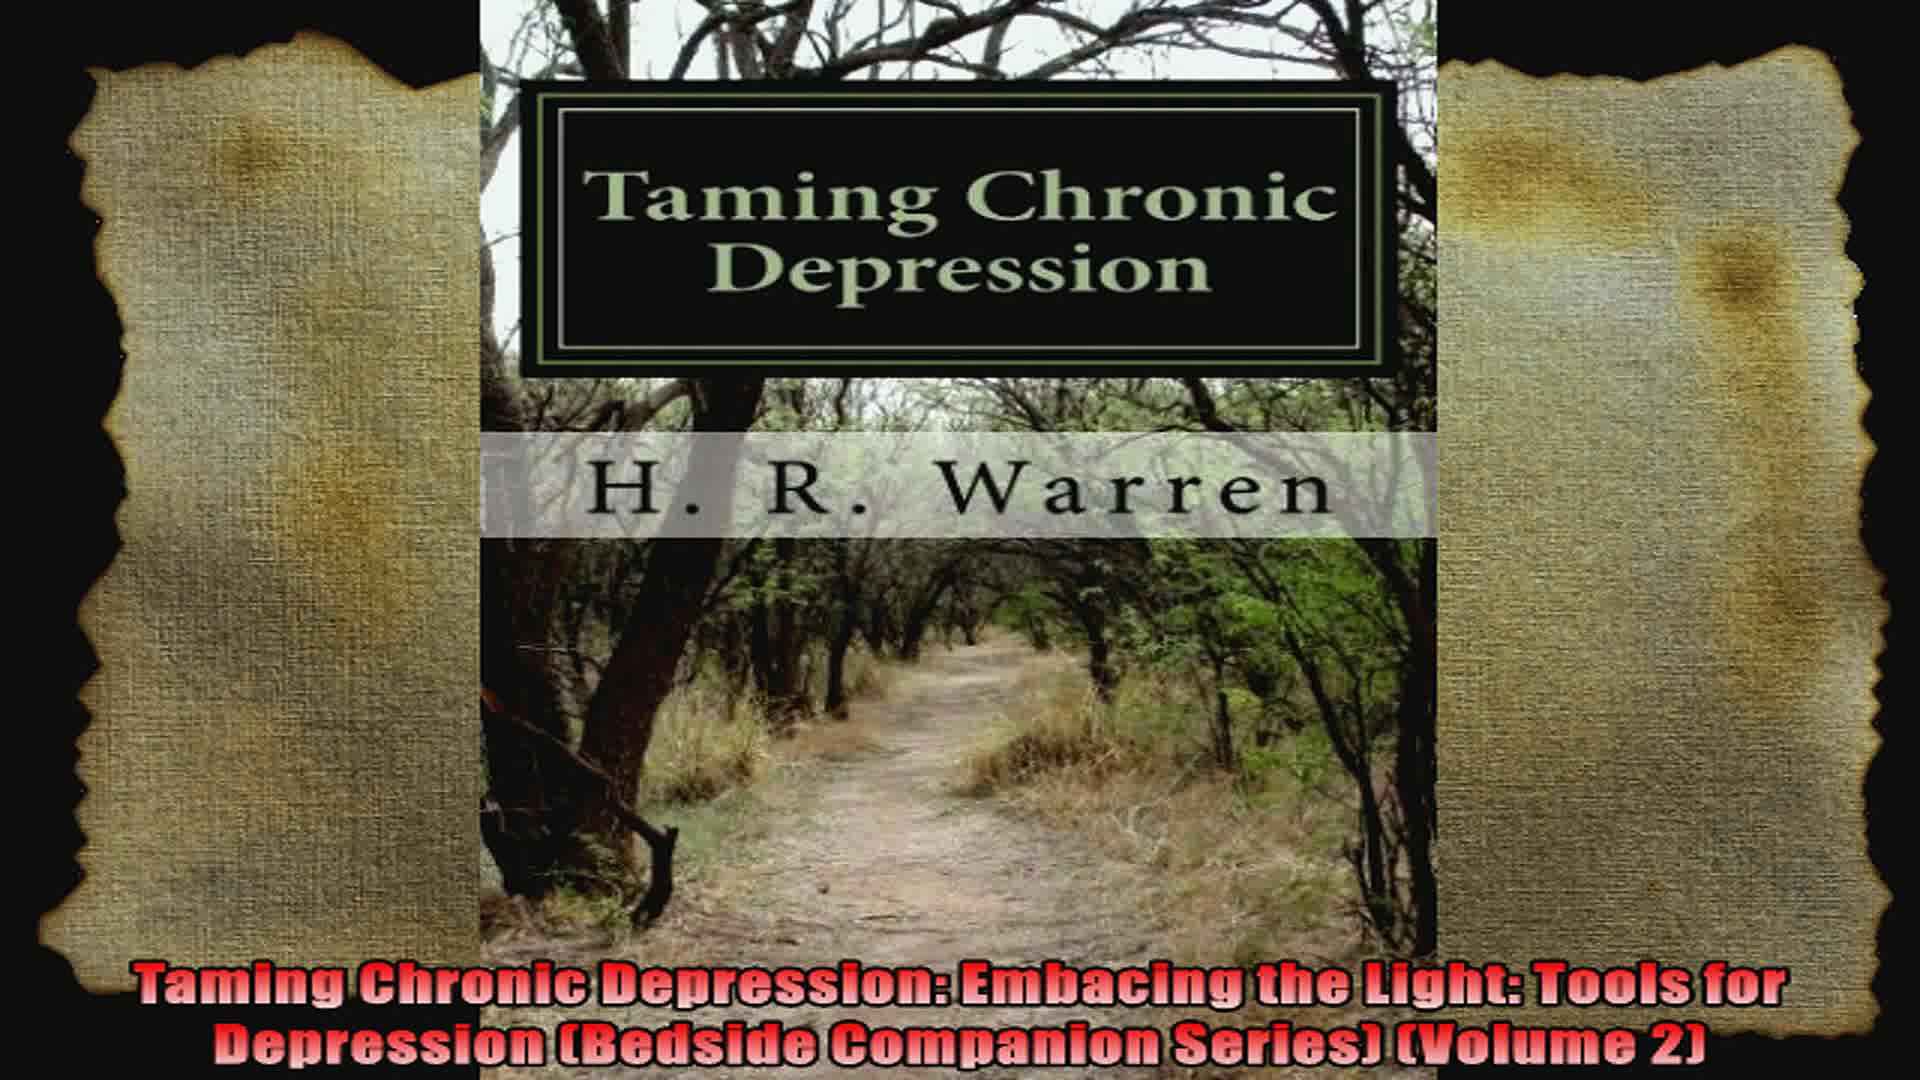 Taming Chronic Depression Embacing the Light Tools for Depression Bedside Companion